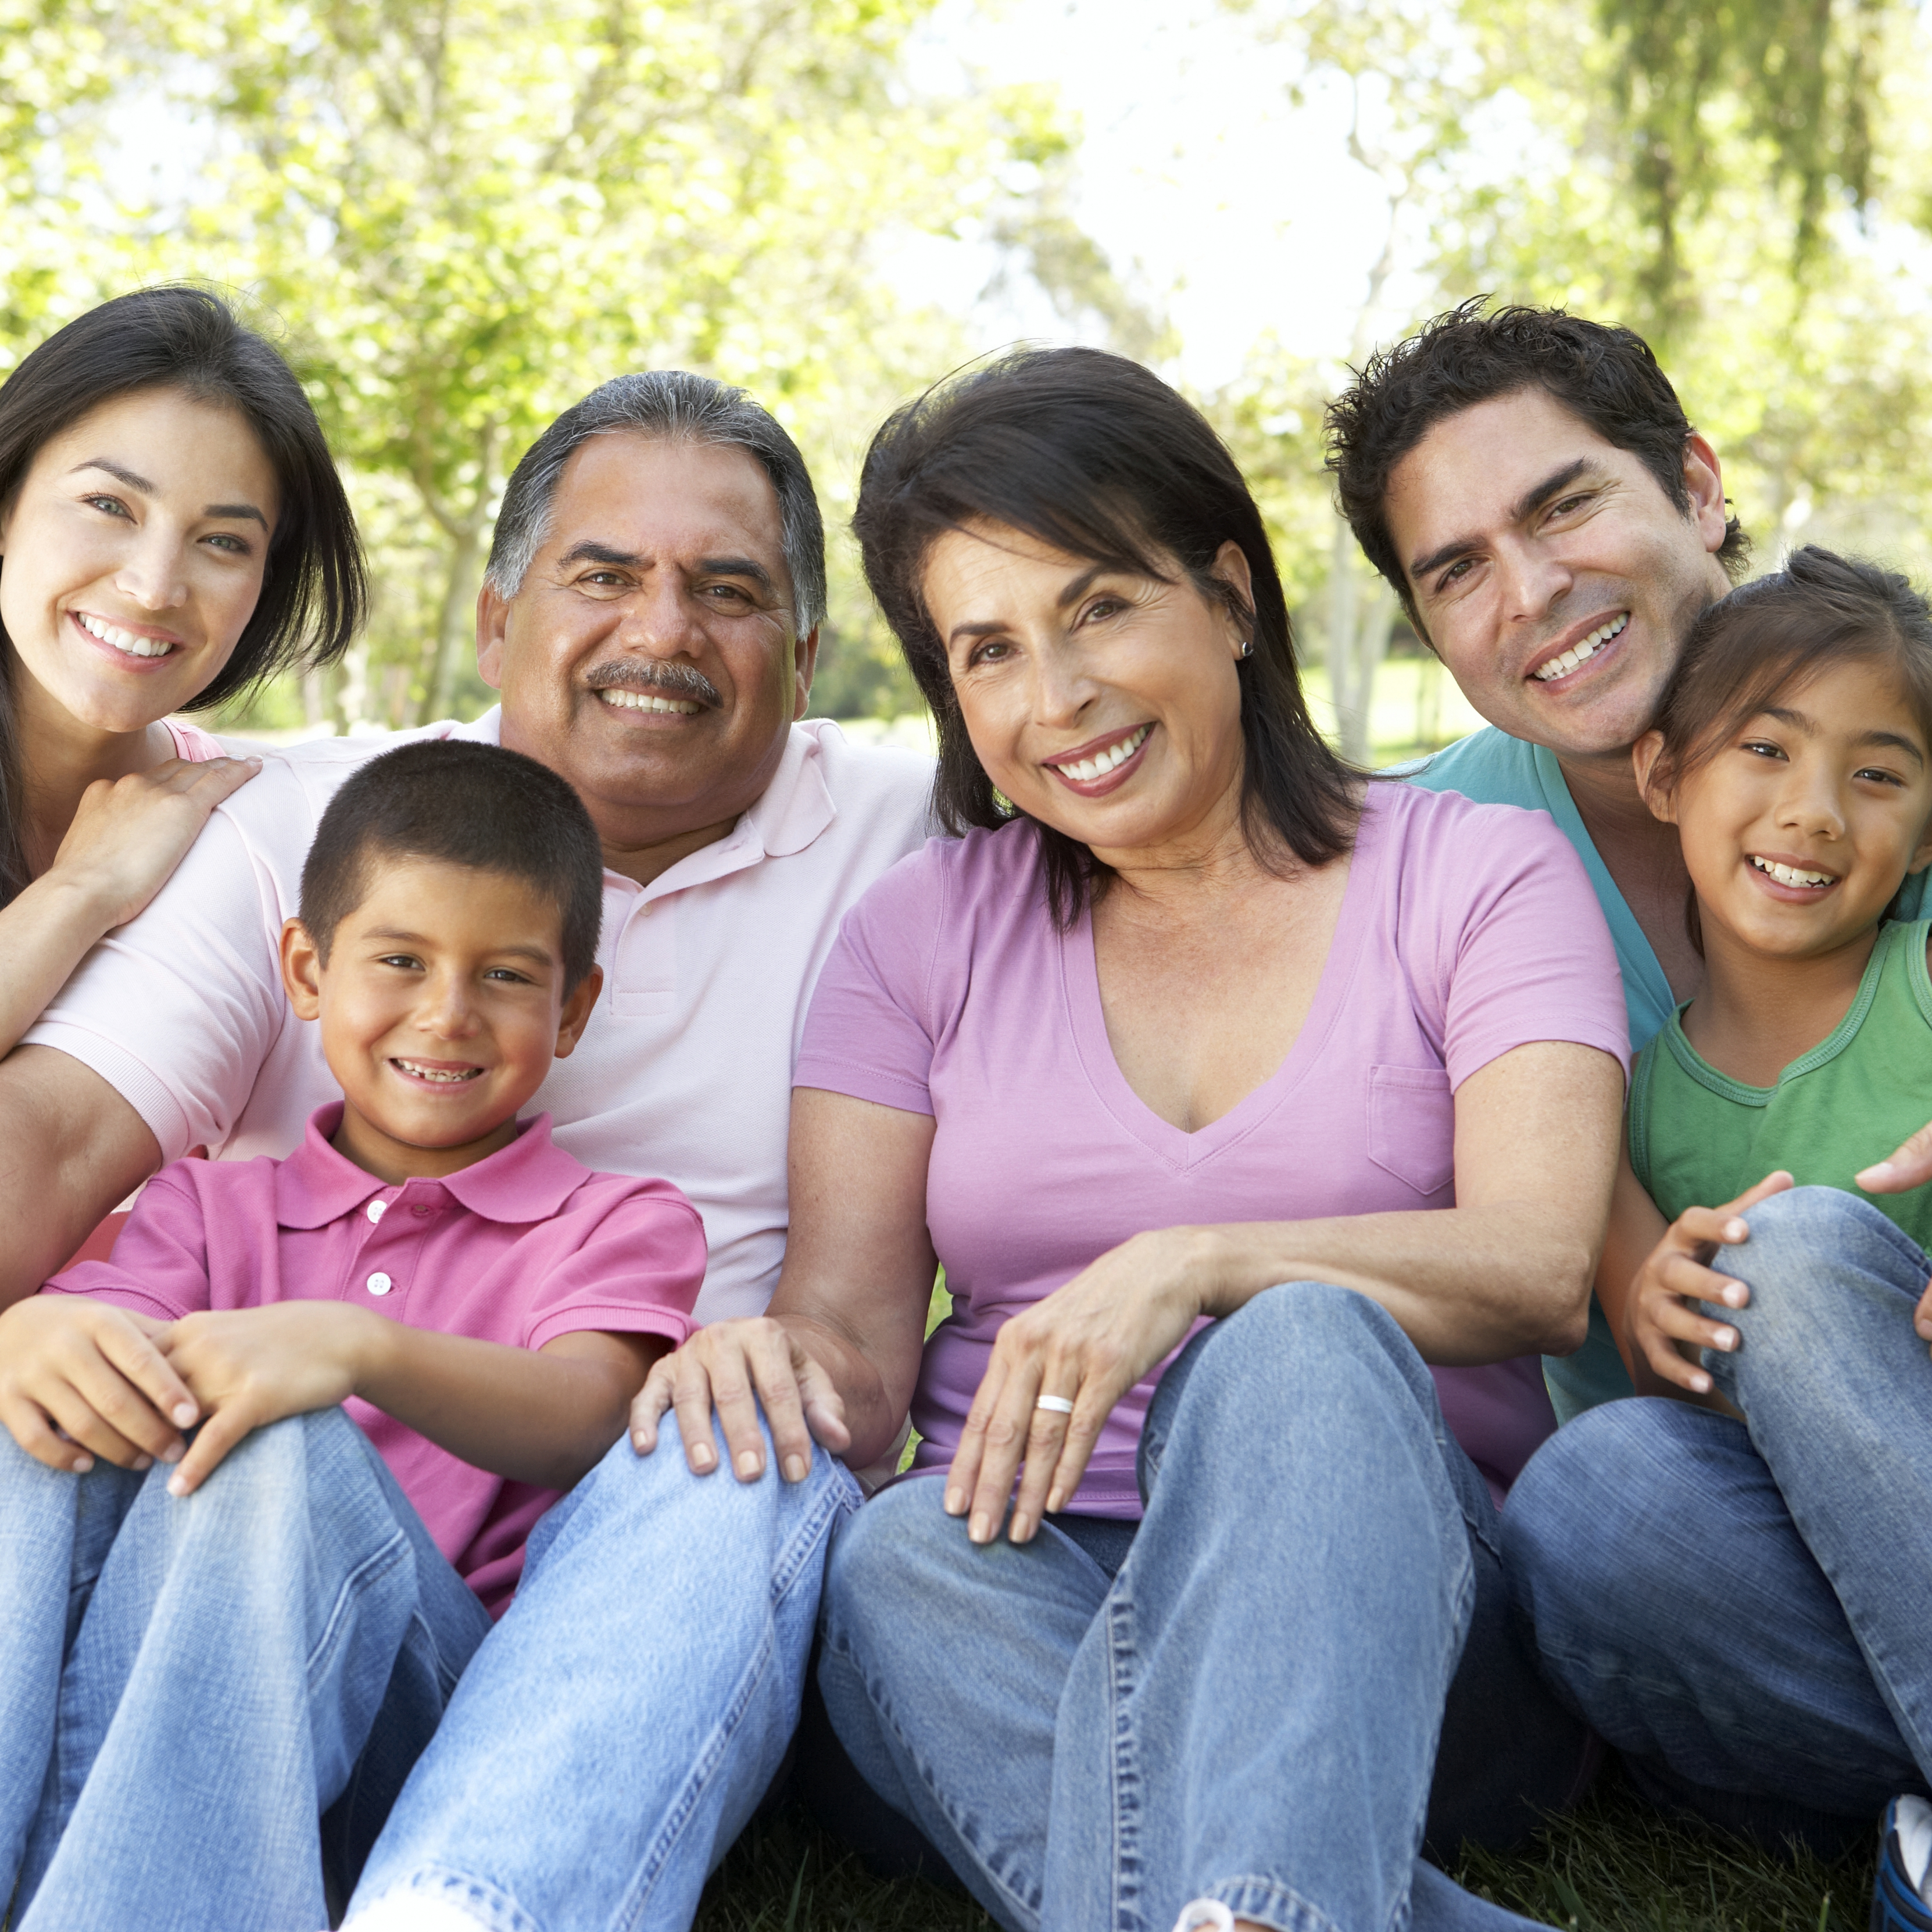 a happy, smiling multi-generational family sitting outside in a park with sunshine and trees